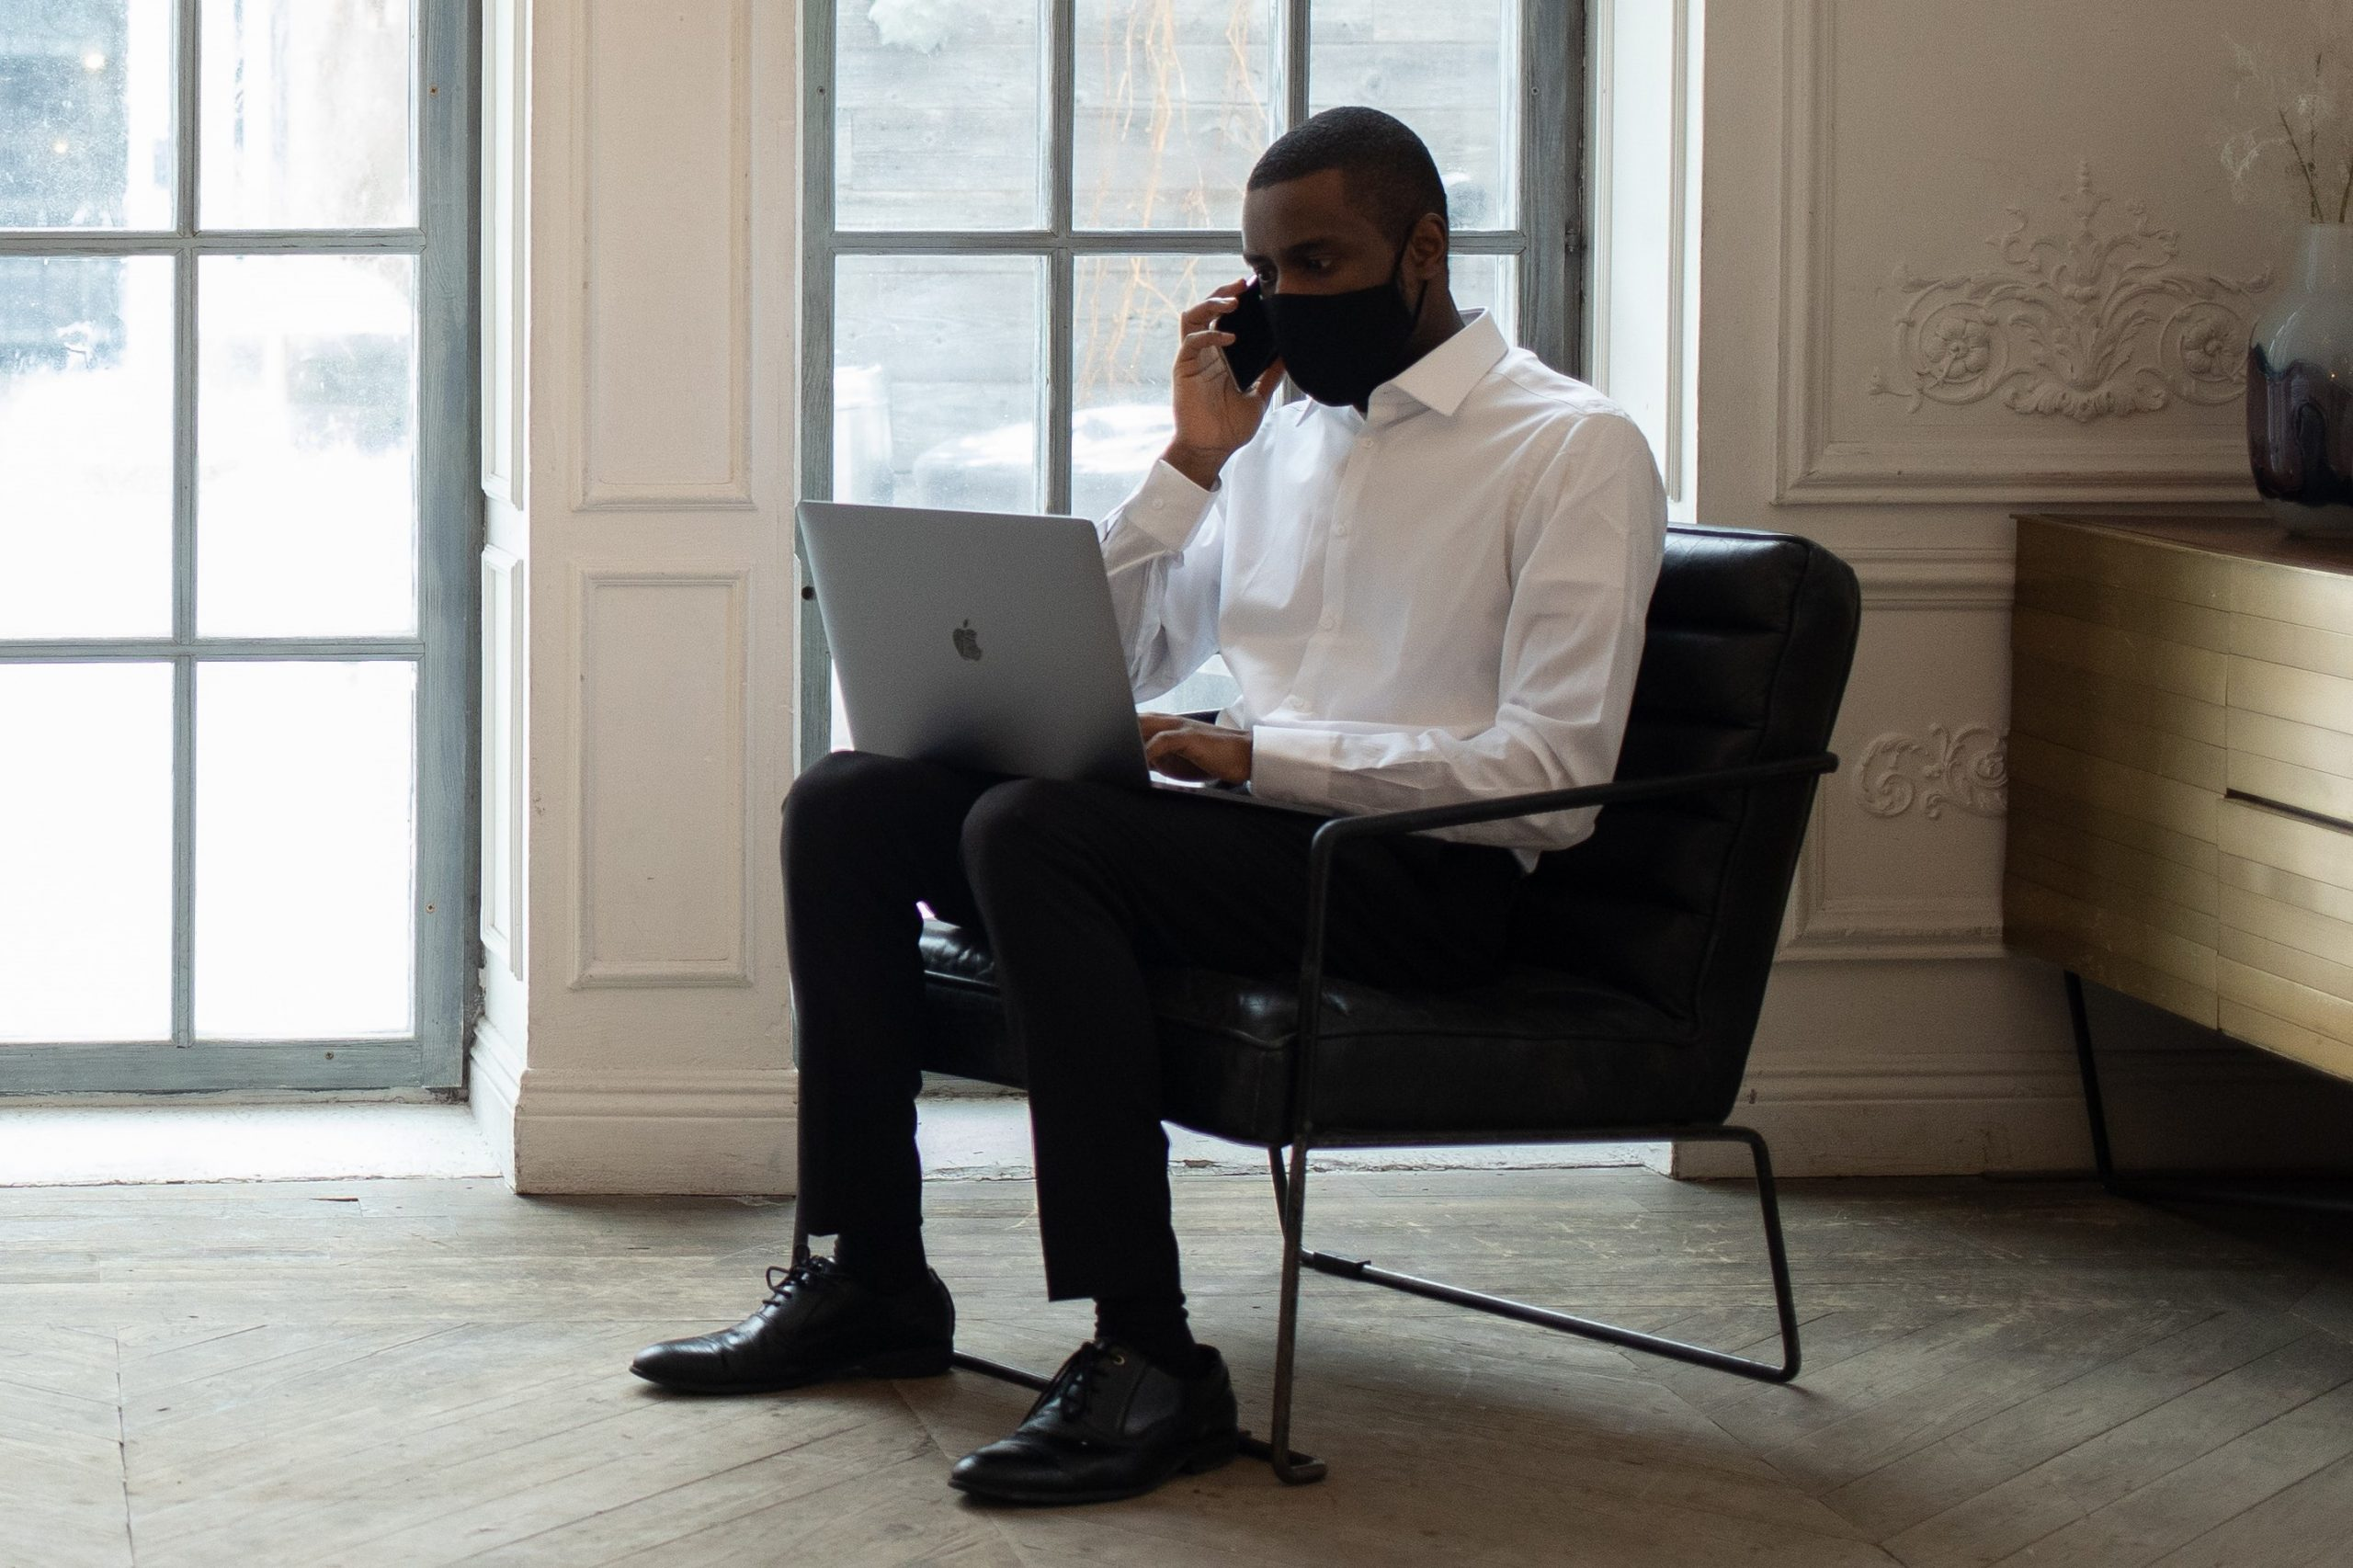 Are Remote Interviews Here to Stay? The Post-Covid Reality of Hiring